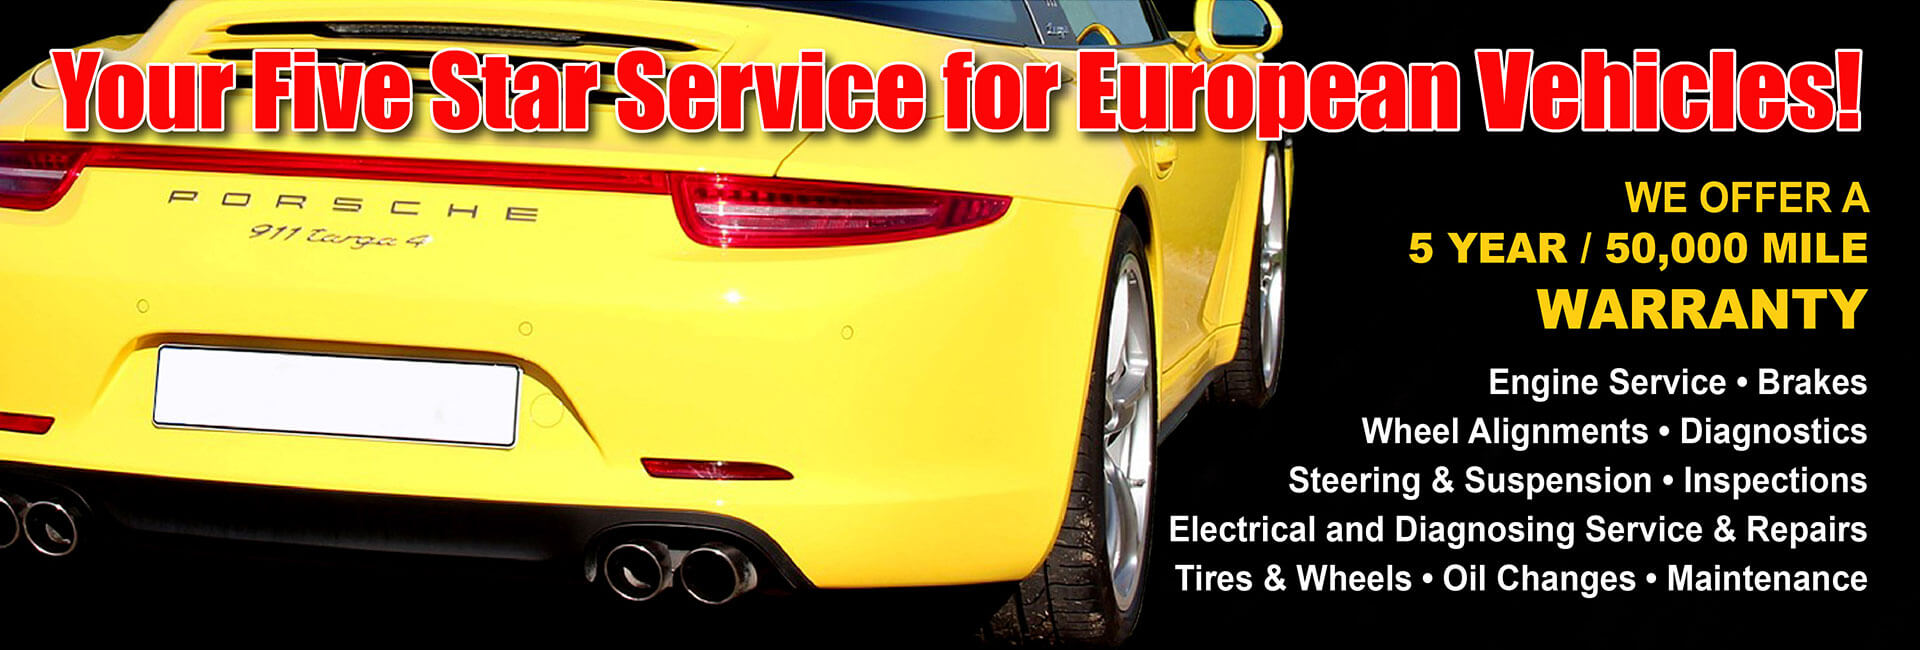 European Auto Repair Pottstown